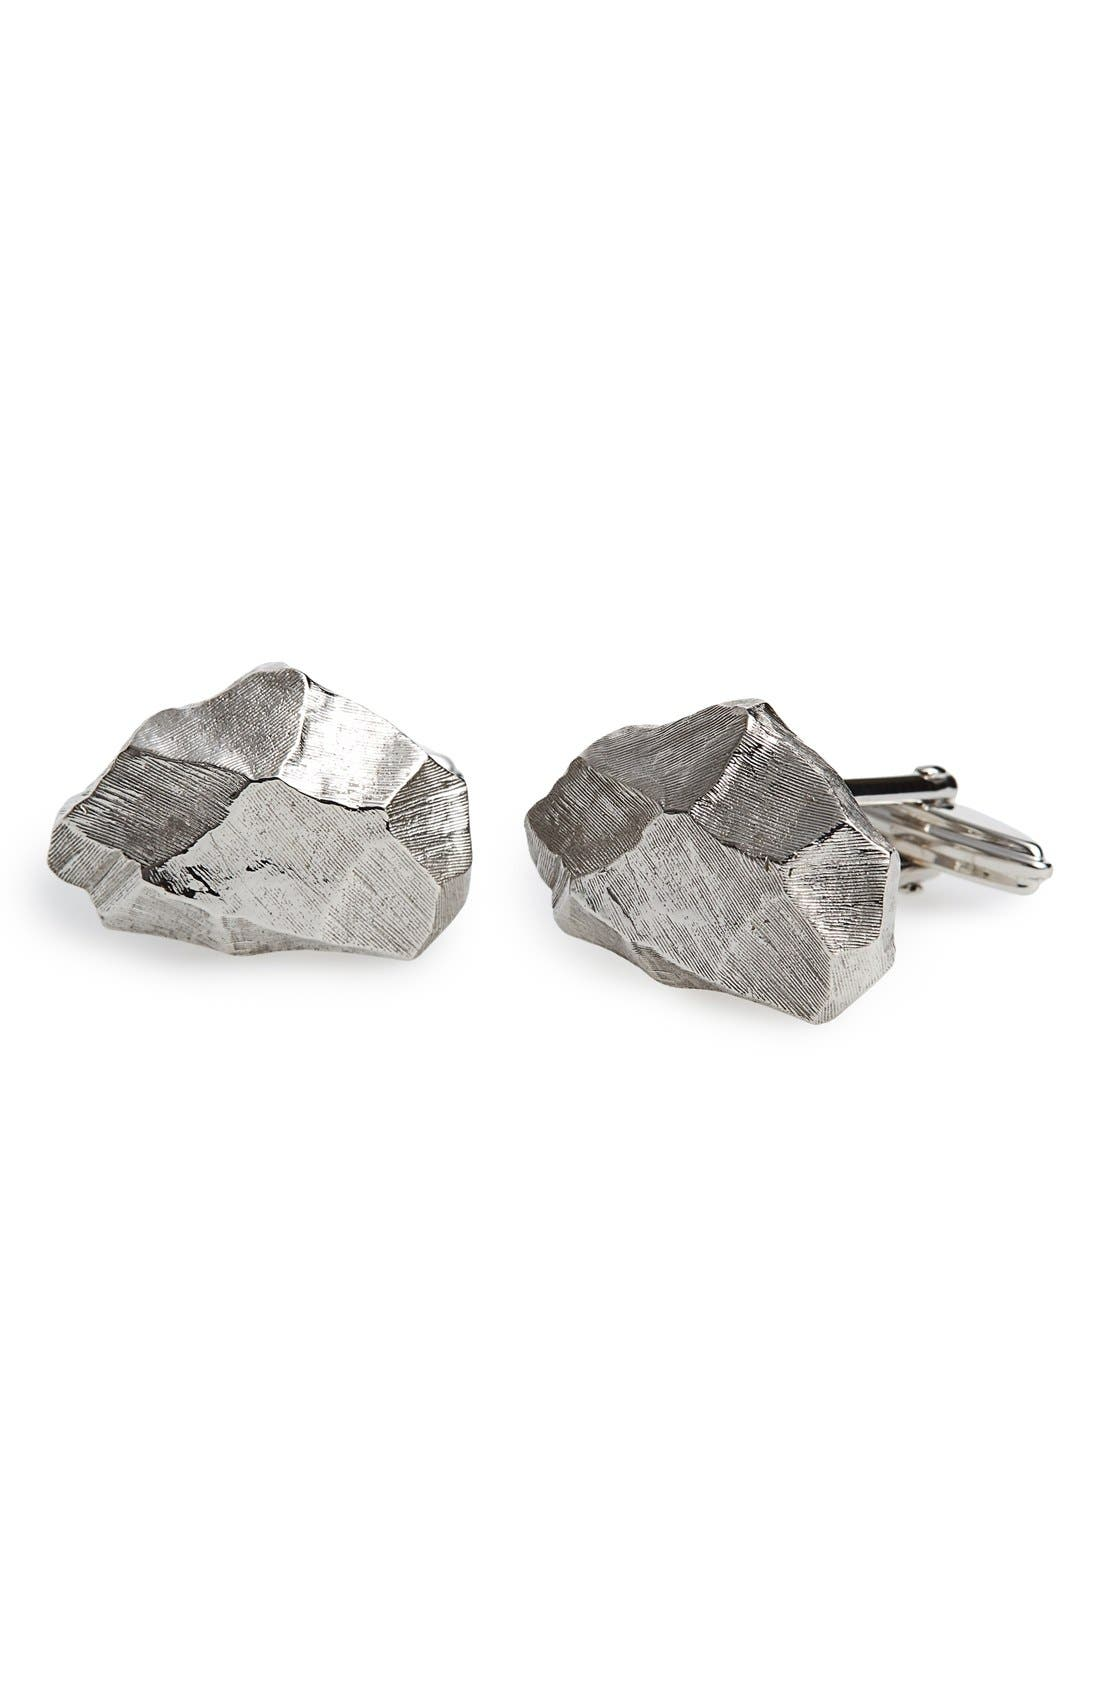 Nugget Cuff Links,                         Main,                         color, Silver